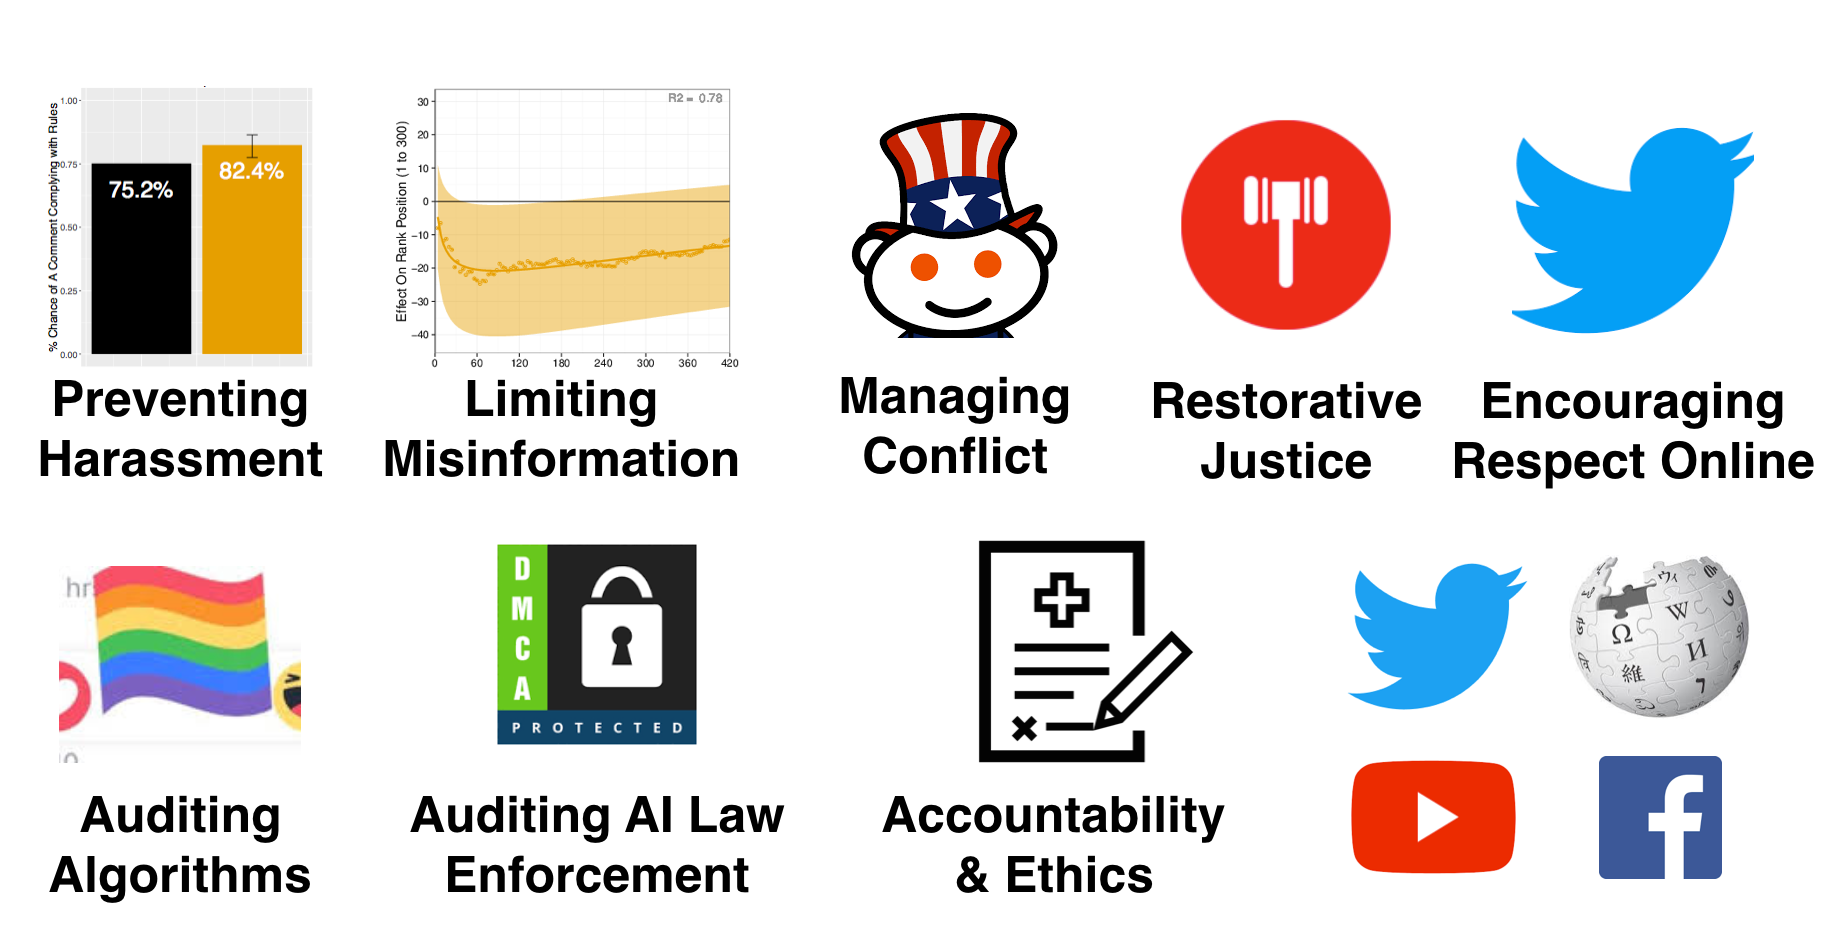 Past and upcoming CivilServant research includes preventing harassment, limiting misinformation, managing conflict, restorative justice, encouraging respect online, auditing algorithms, auditing AI law enforcement, and expanding research accountability and ethics across multiple online platforms.